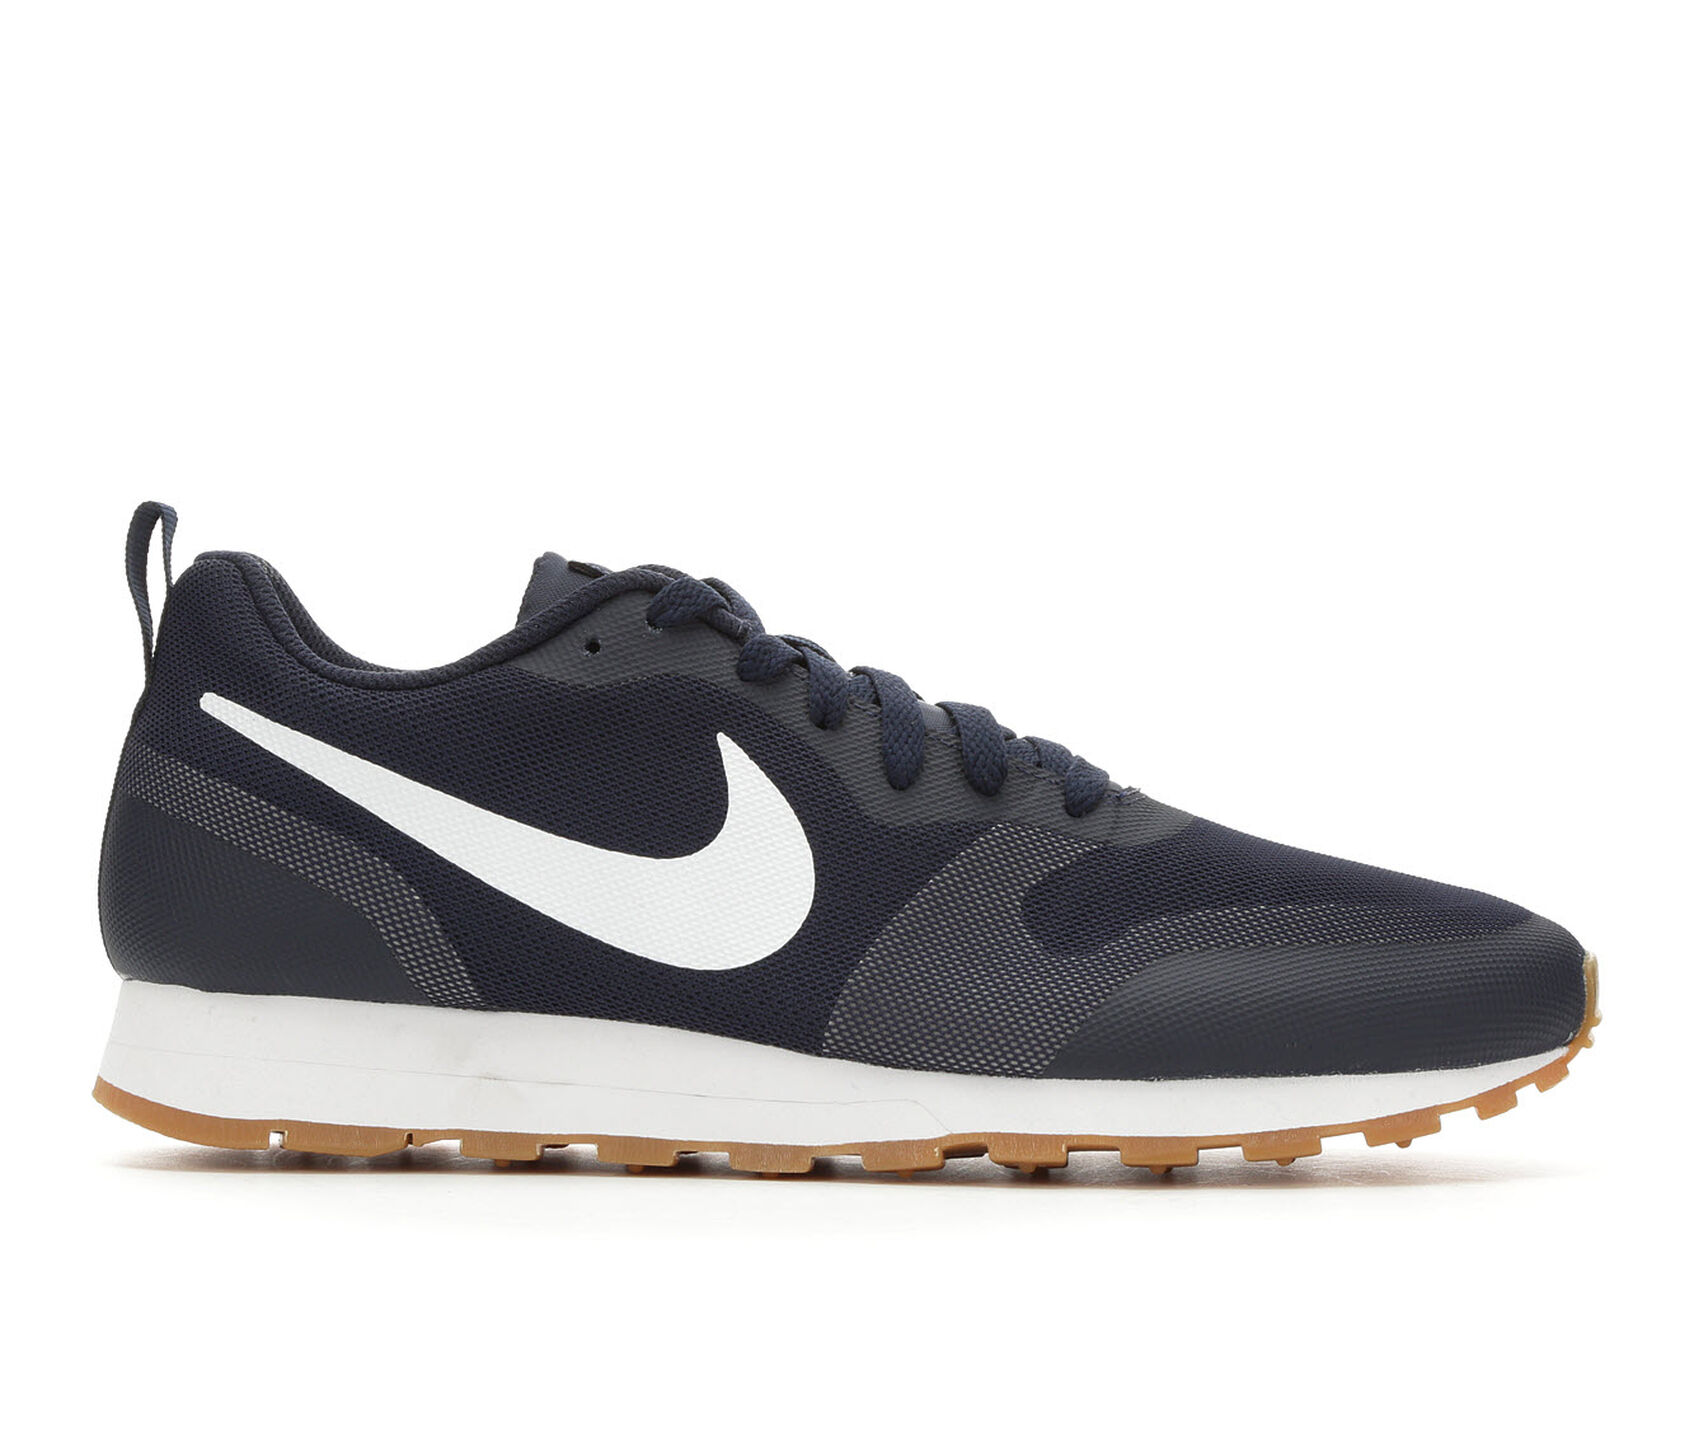 96587fbd4ad465 ... Nike MD Runner 2 19 Sneakers. Previous